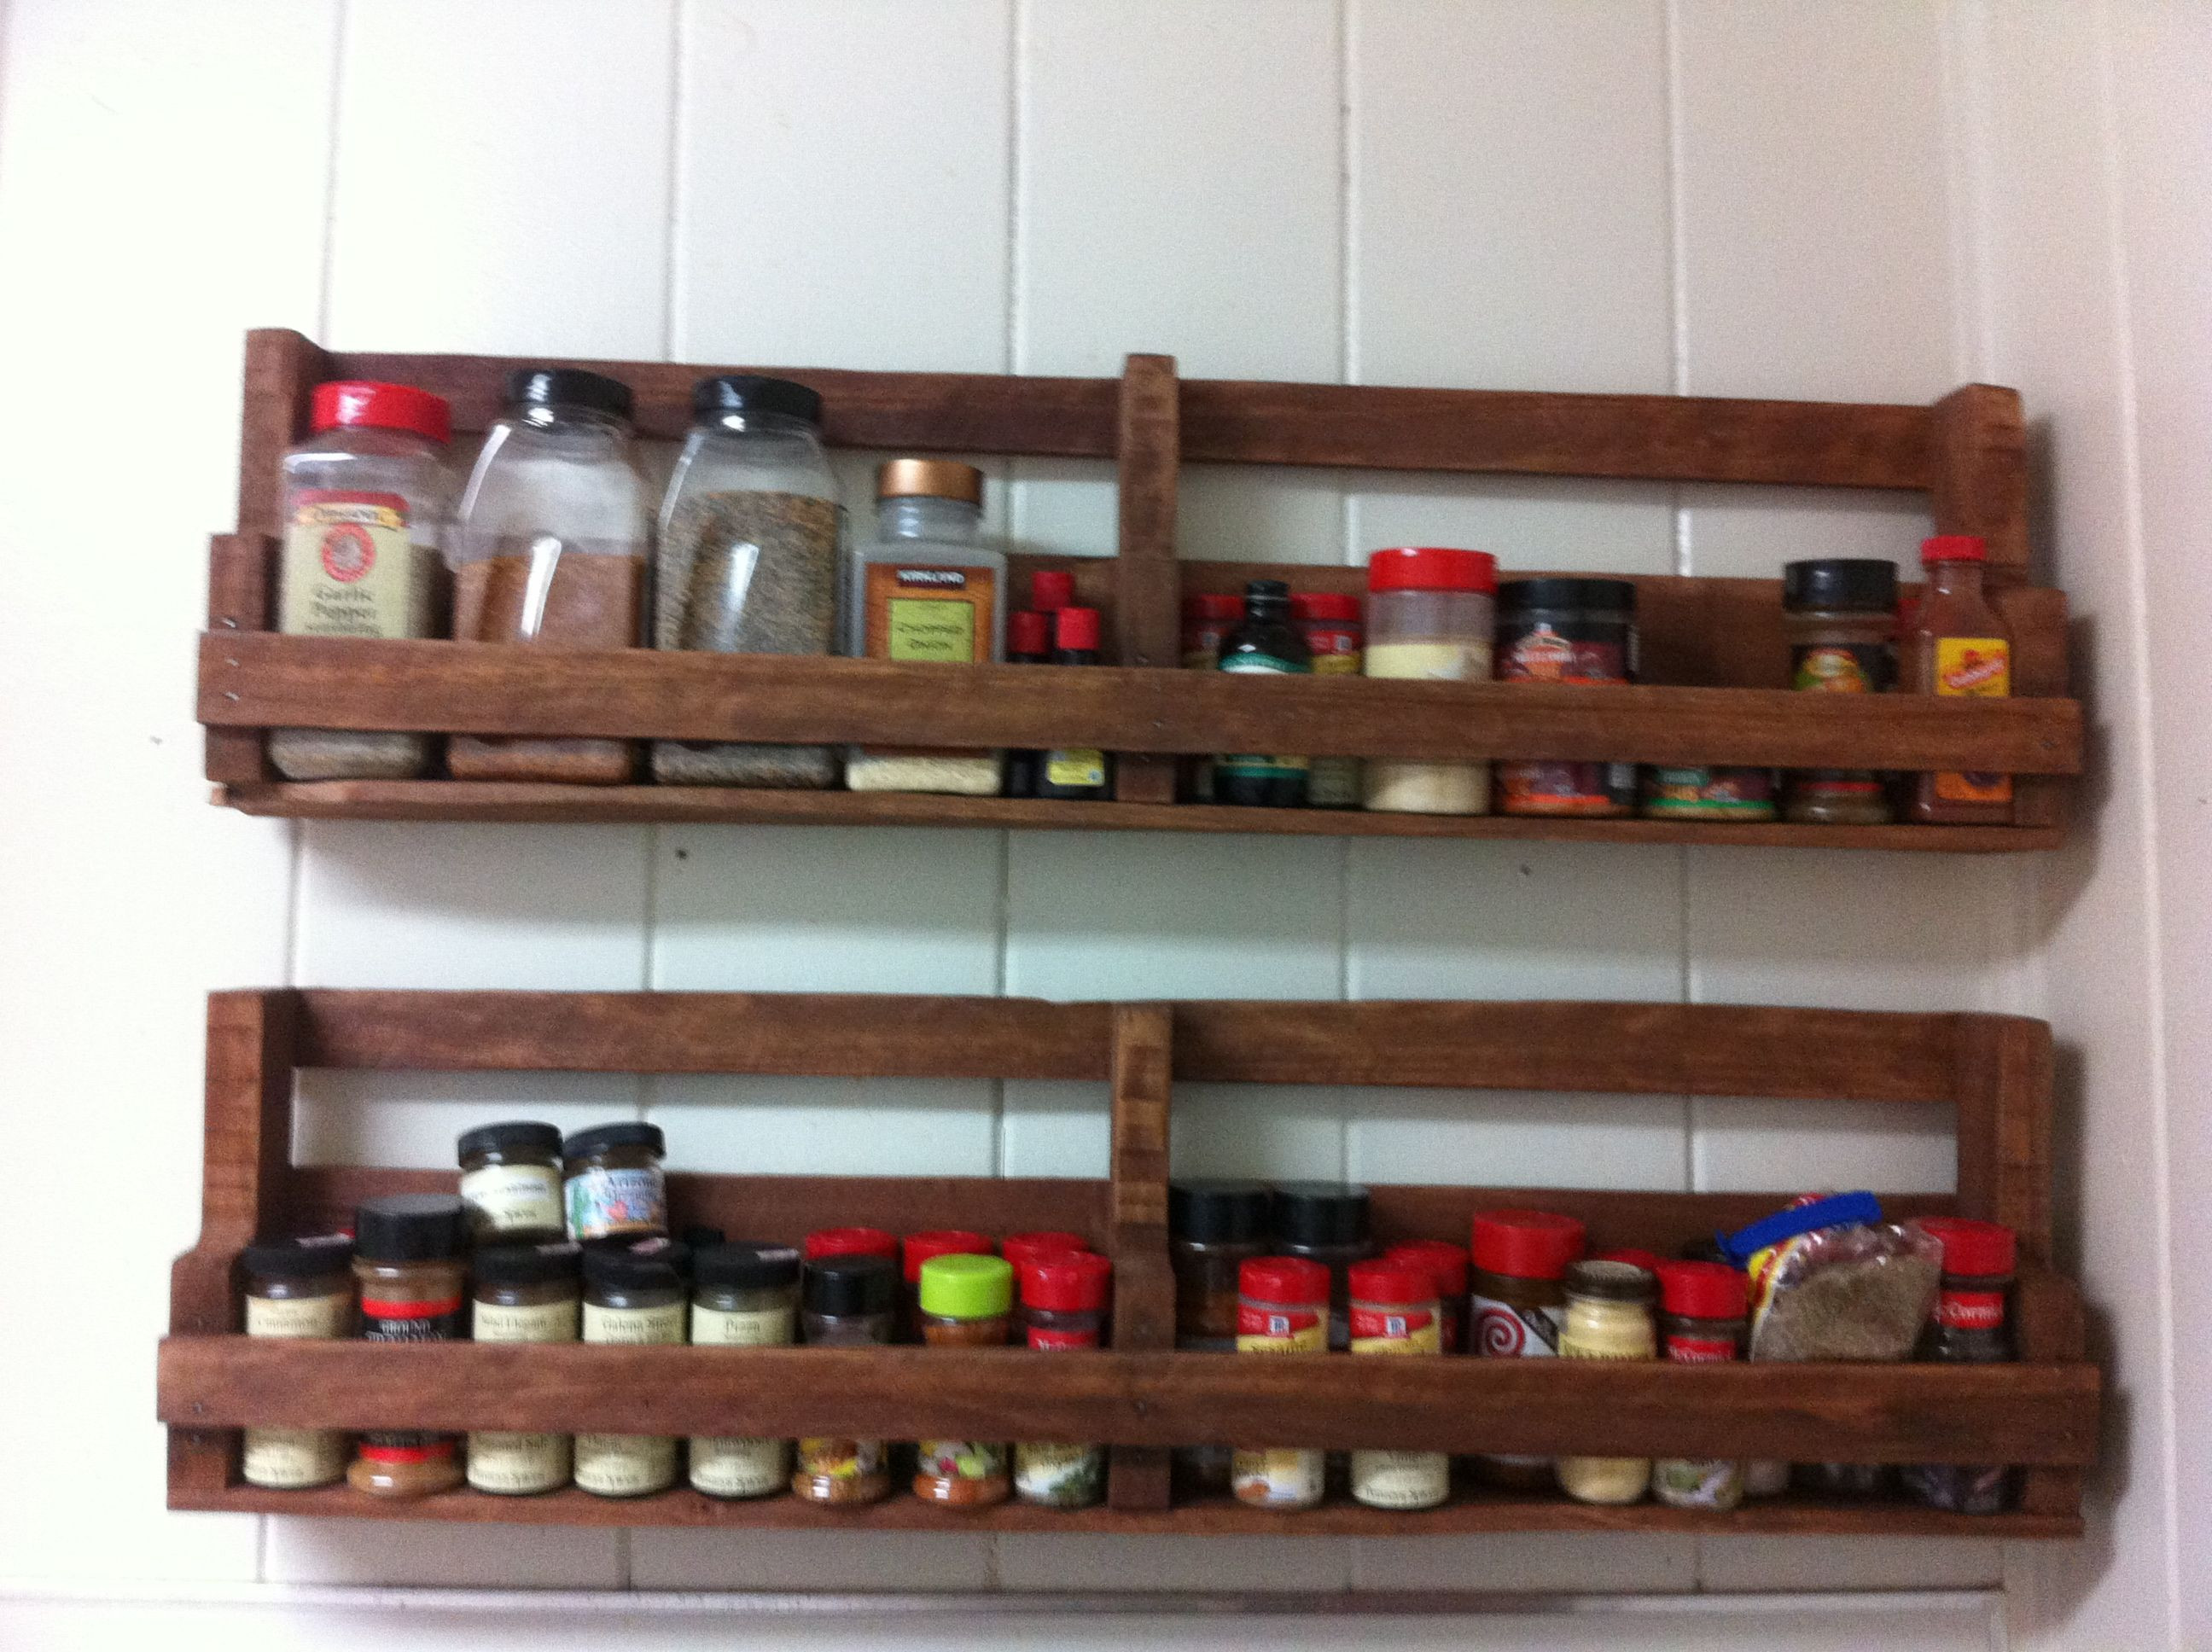 Best ideas about Spice Racks DIY . Save or Pin DIY Pallet Spice Racks for Kitchen Now.